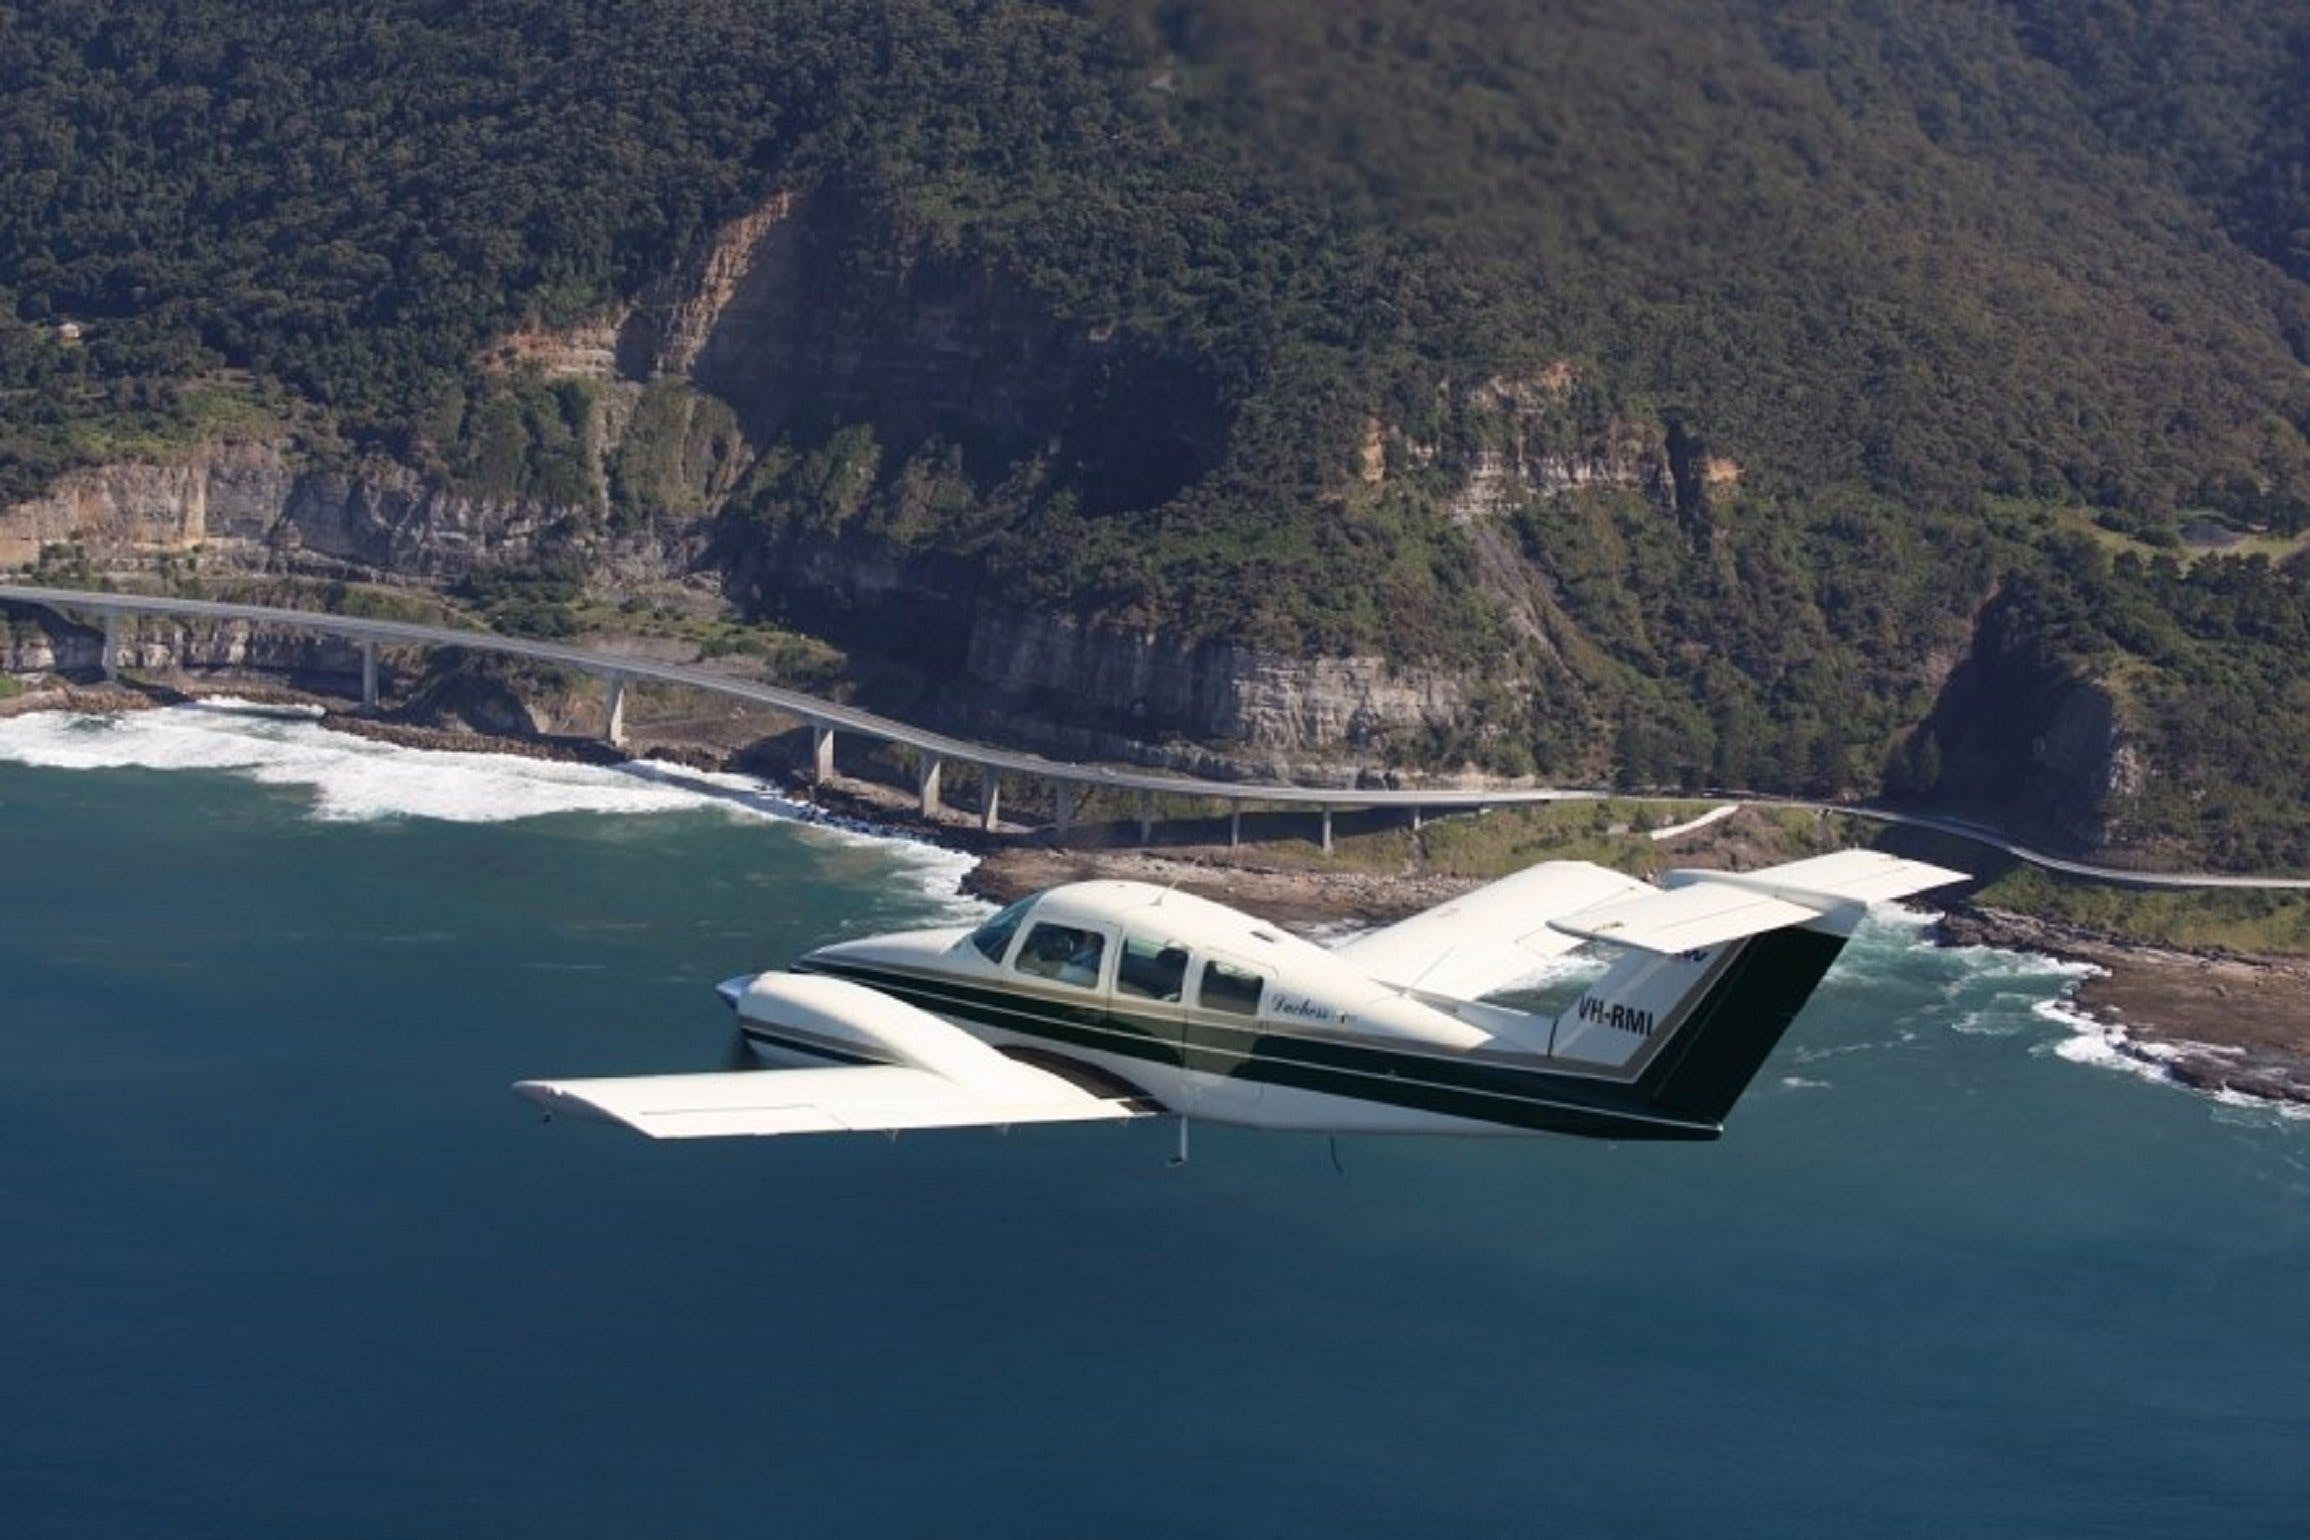 NSW Air Flight Training Pty Ltd - Great Ocean Road Tourism